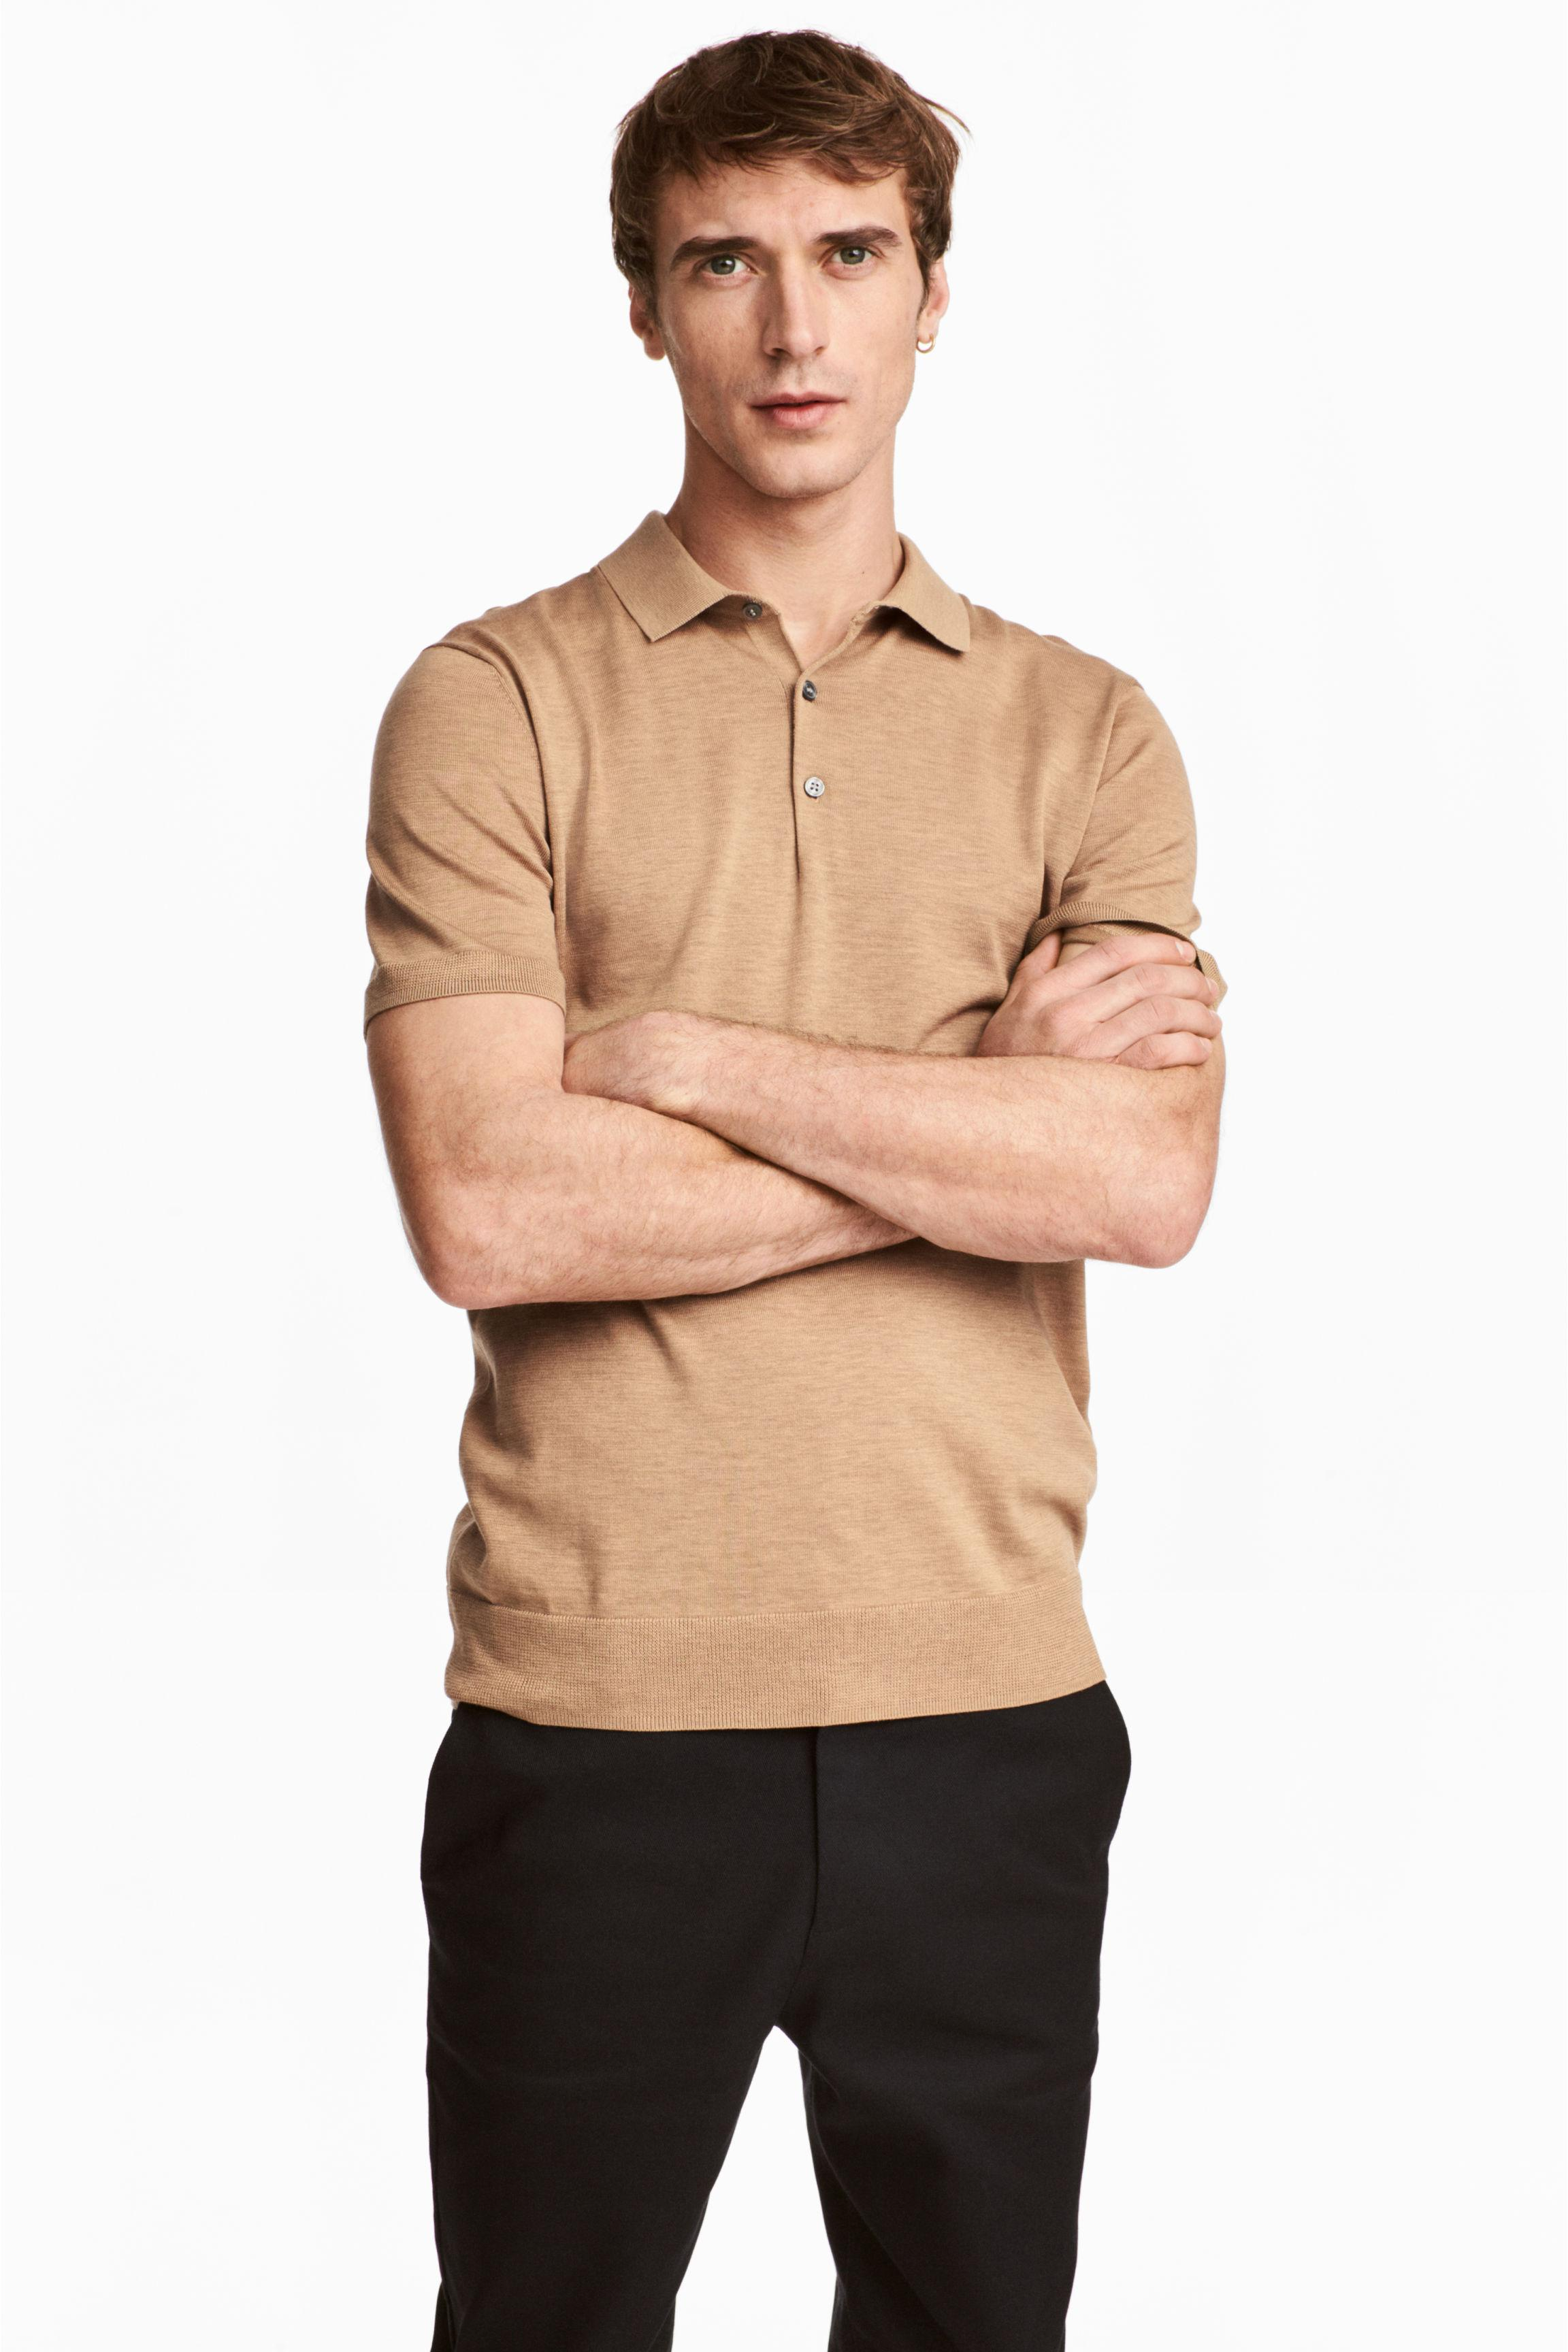 H m silk blend polo shirt in natural for men lyst for H m polo shirt mens